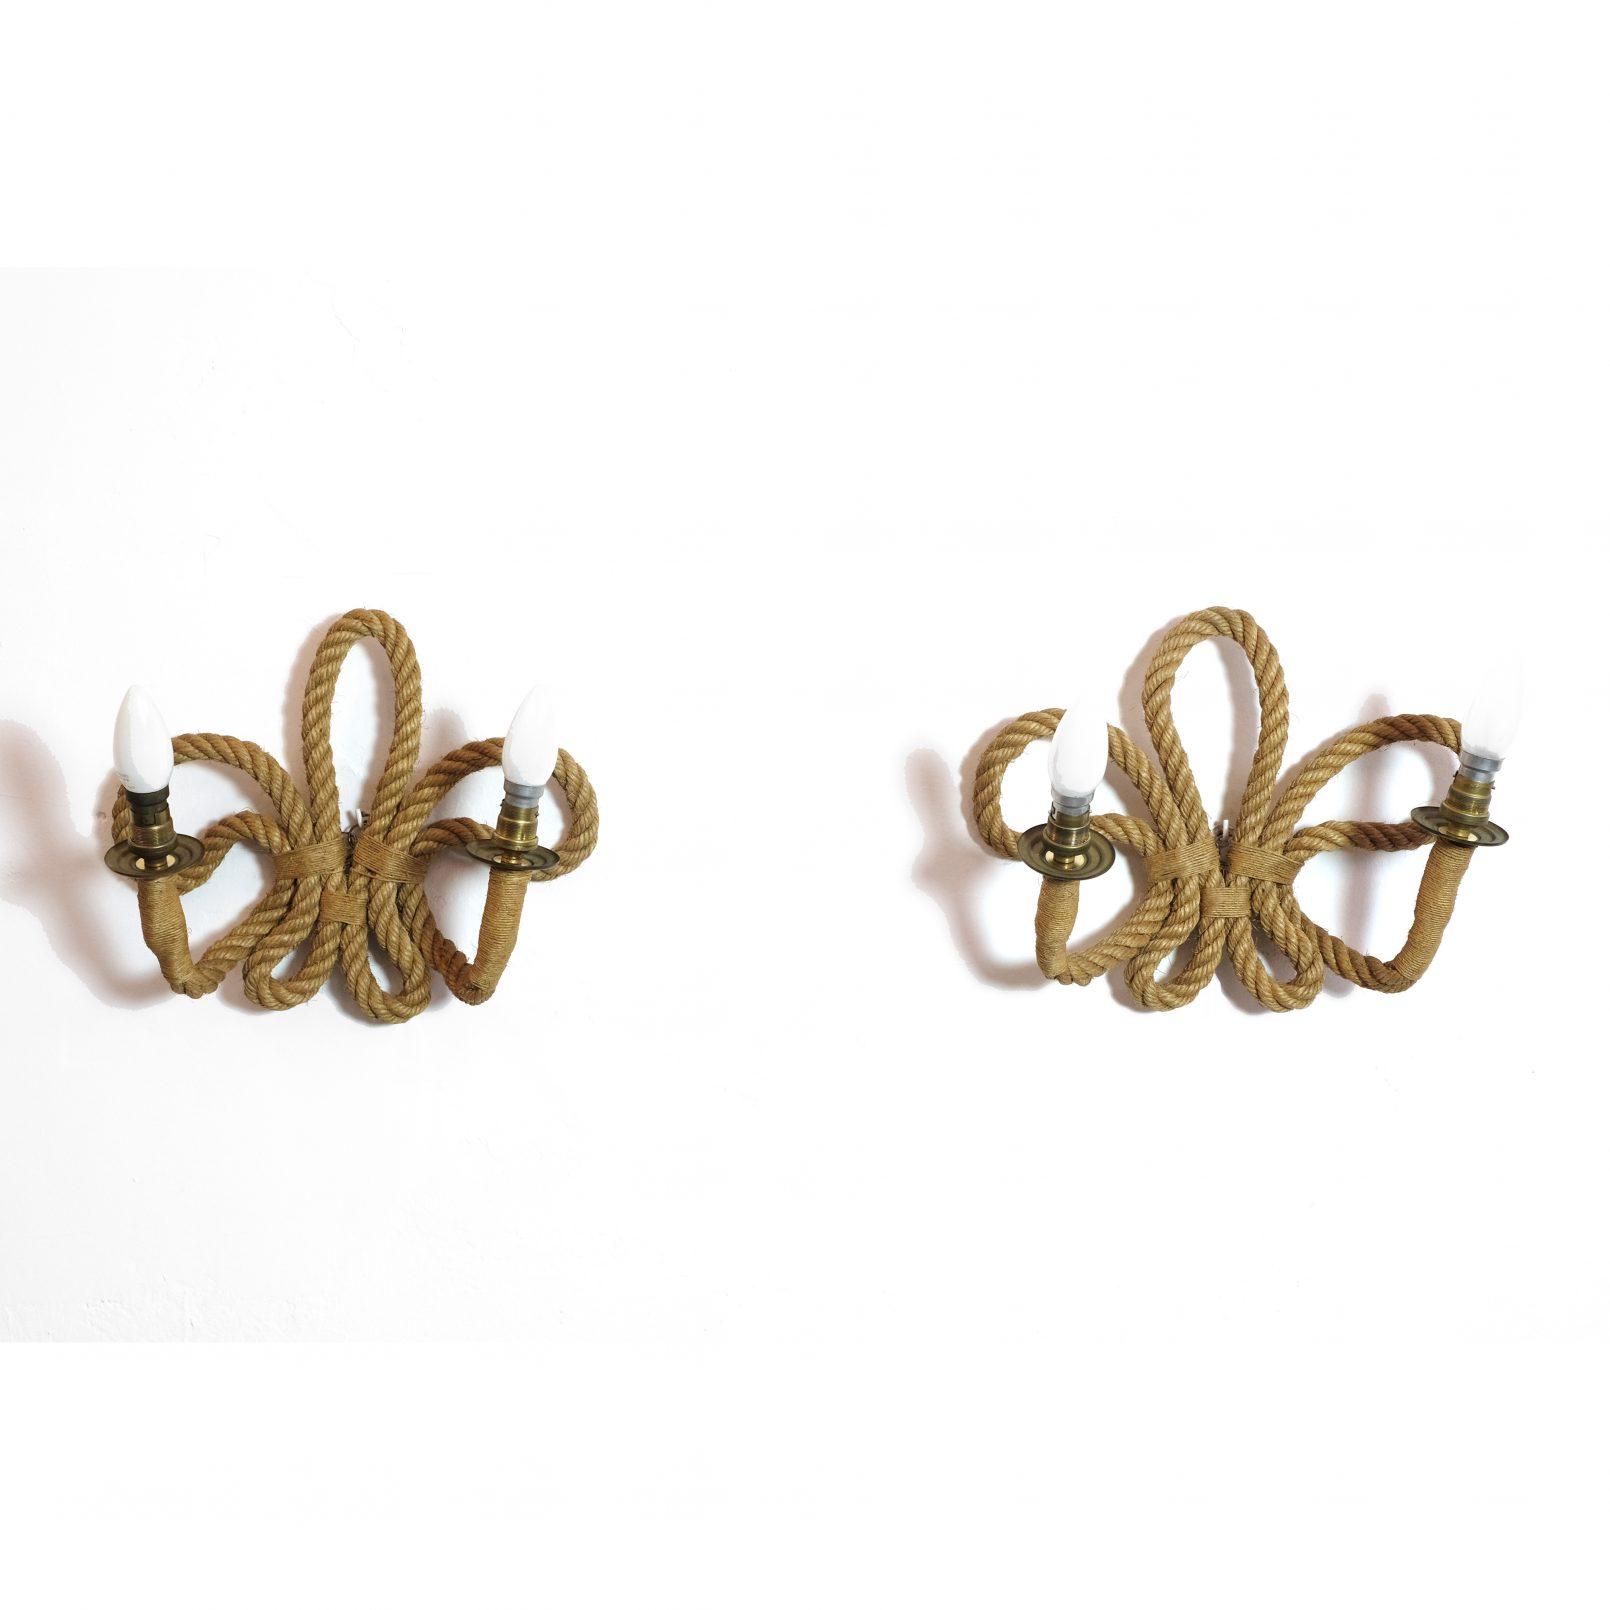 Pair of French rope wall lamps, 1950-1960.